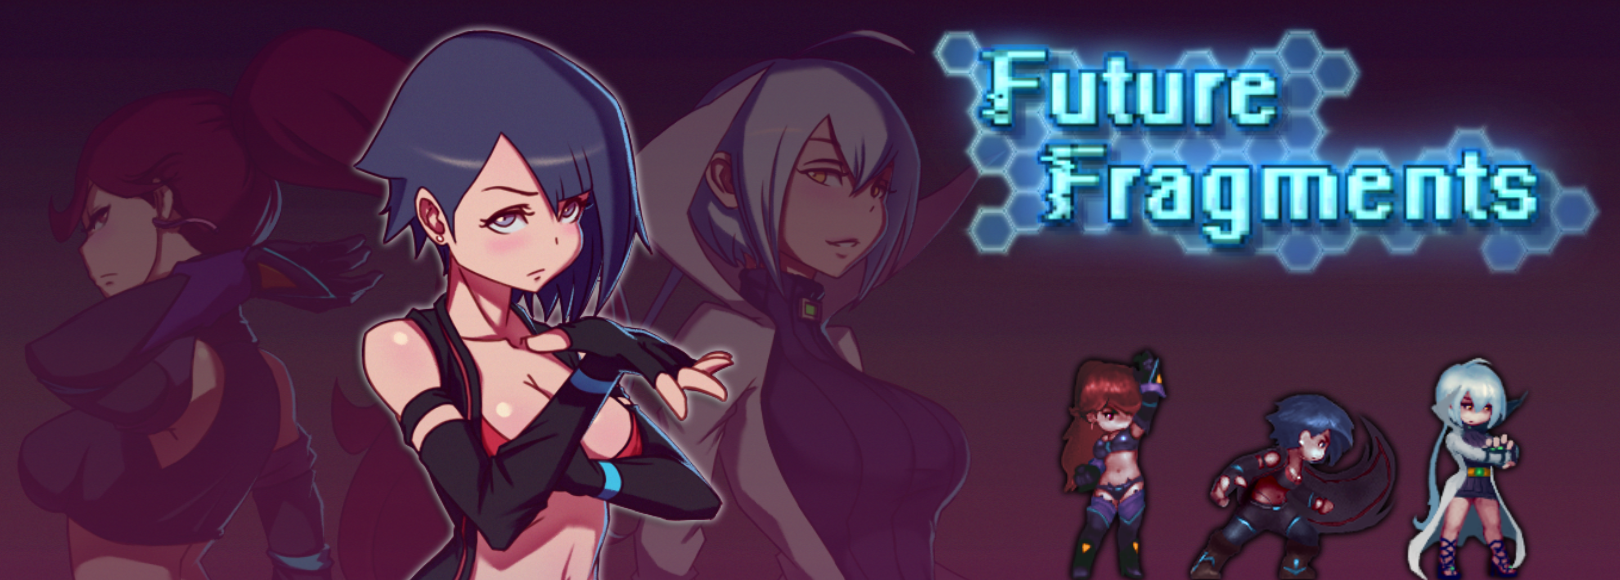 Future Fragments Demo | 18+ Adult NSFW Hentai Platformer w/ Story & Voiceovers!